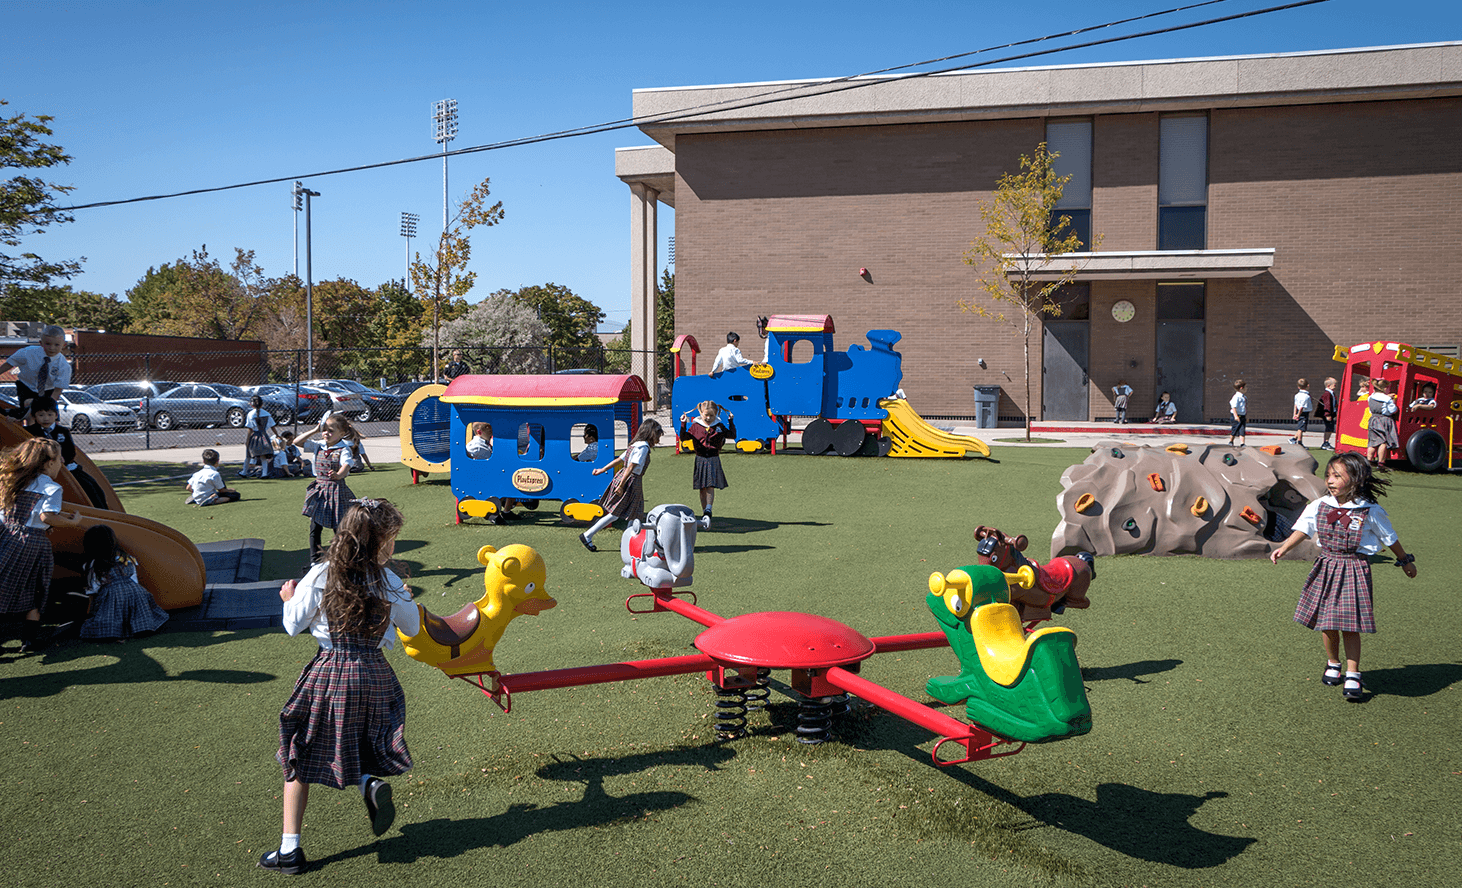 Preschool Playground | Challenger School - Salt Lake | Private School In Salt Lake City, Utah